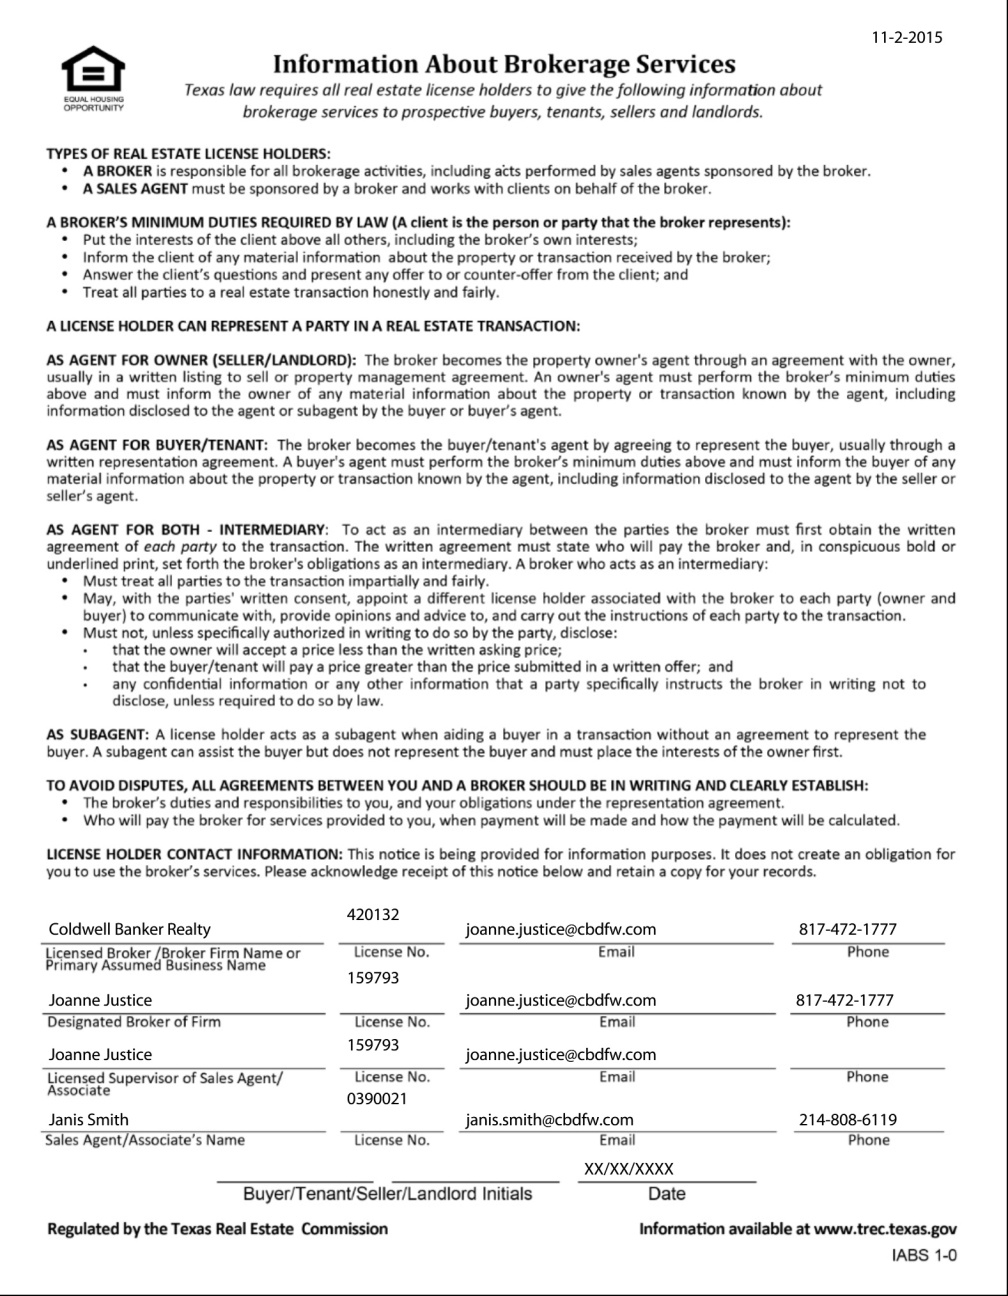 Texas Real Estate Commission (TREC) Information About Brokerage Services Form